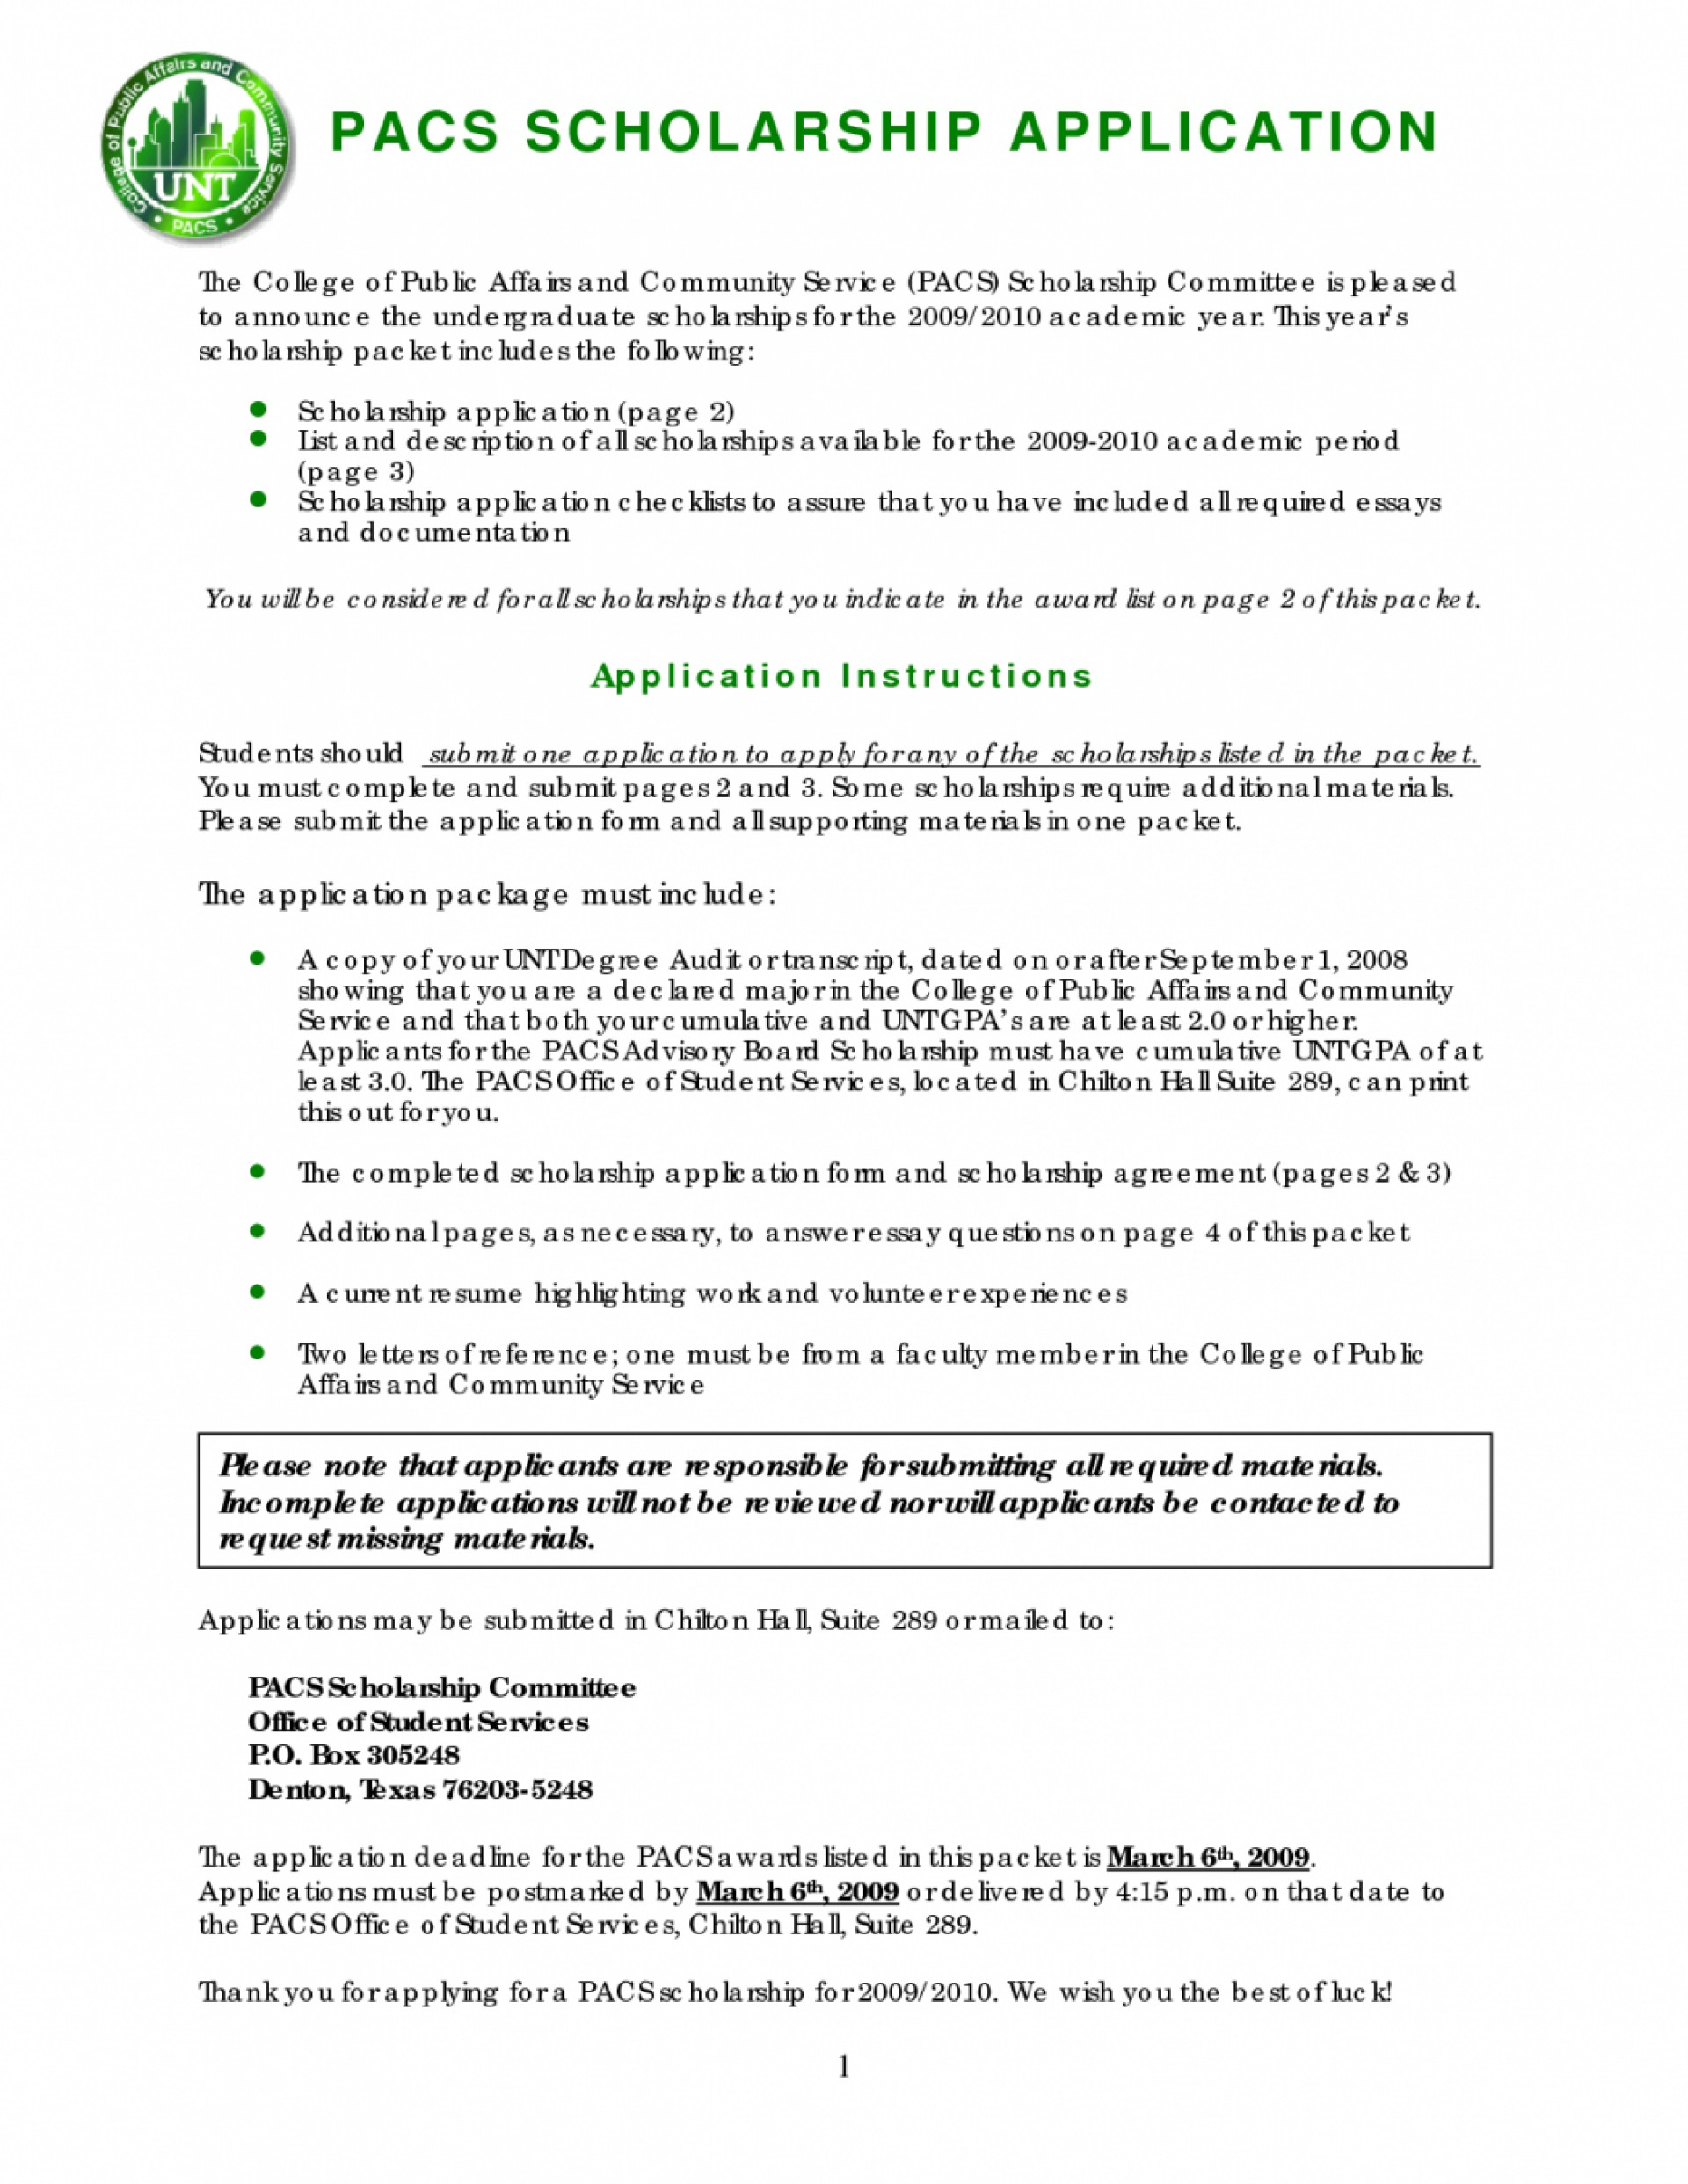 021 Essay Example Samples Of Essays For Scholarships Scholarship Application Sample Pdf 11exu Nursing College Examples Ideas Mba About Yourself 1048x1356 Imposing Non High School Freshman No Students 2019 1920